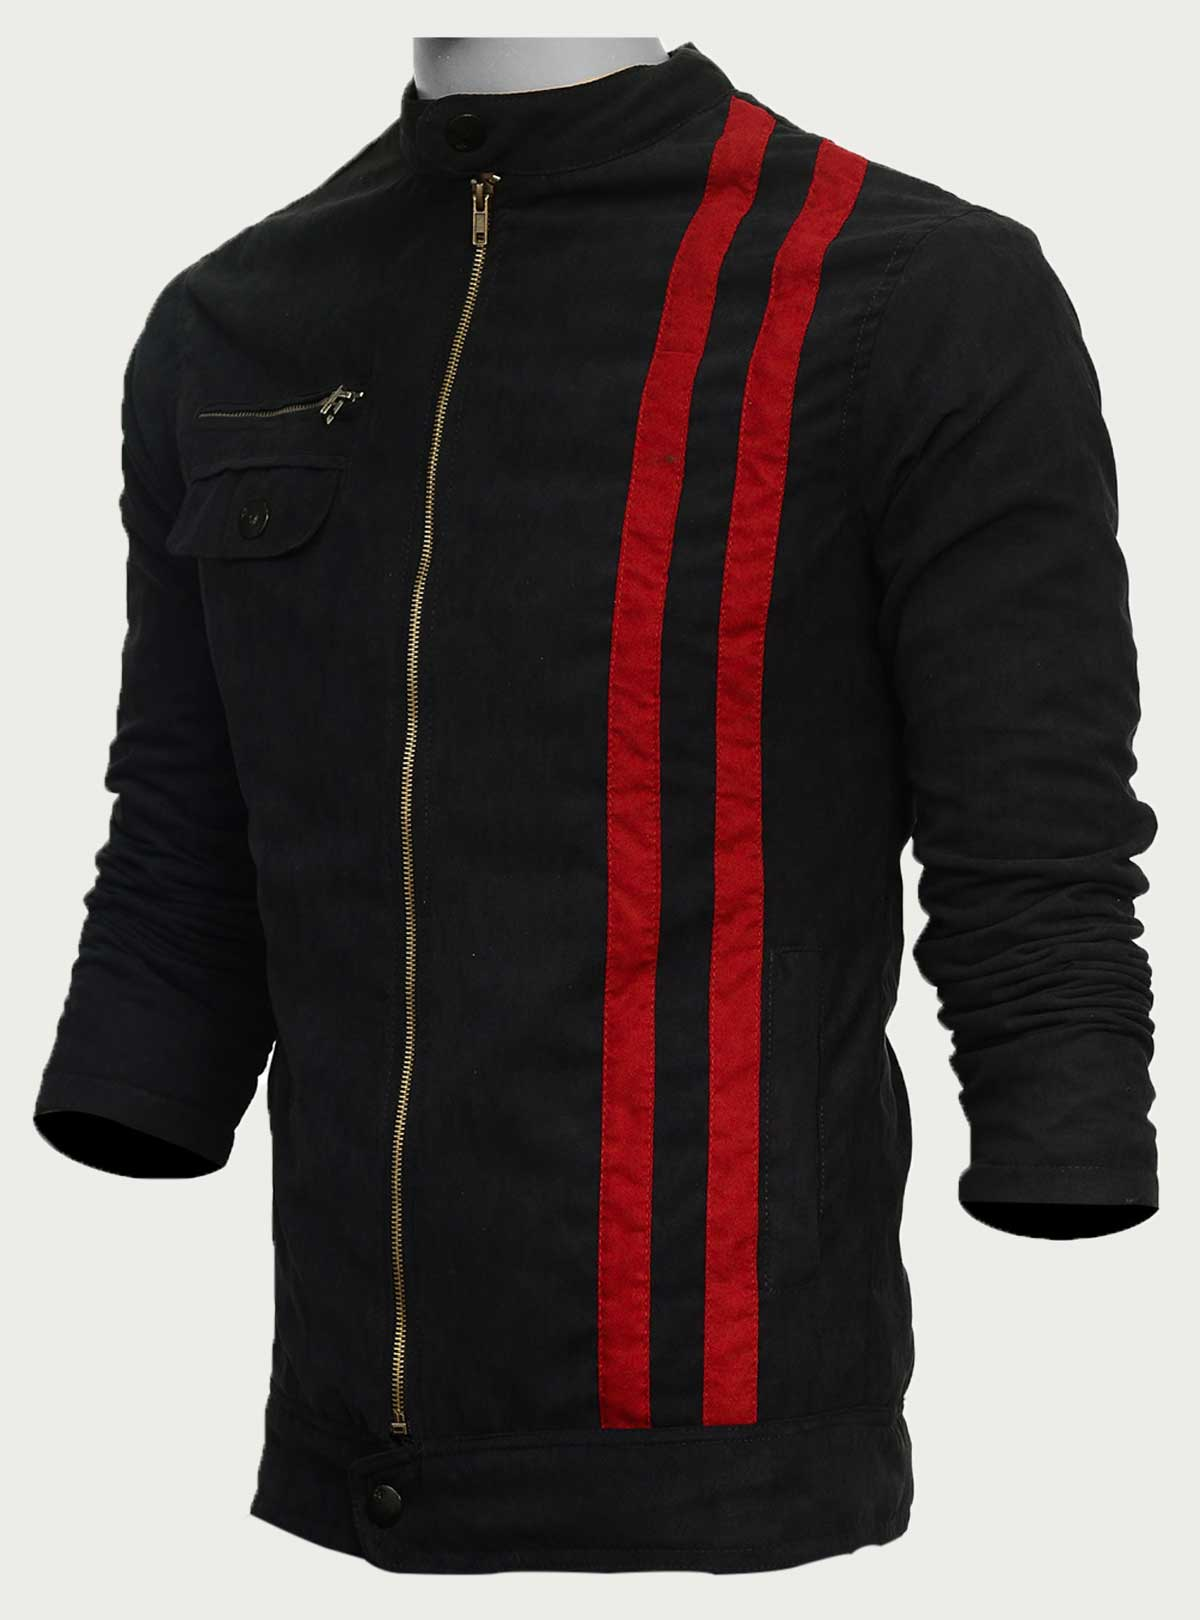 Stylish Winter Jacket | Esho.com | Best online shopping in Bangladesh